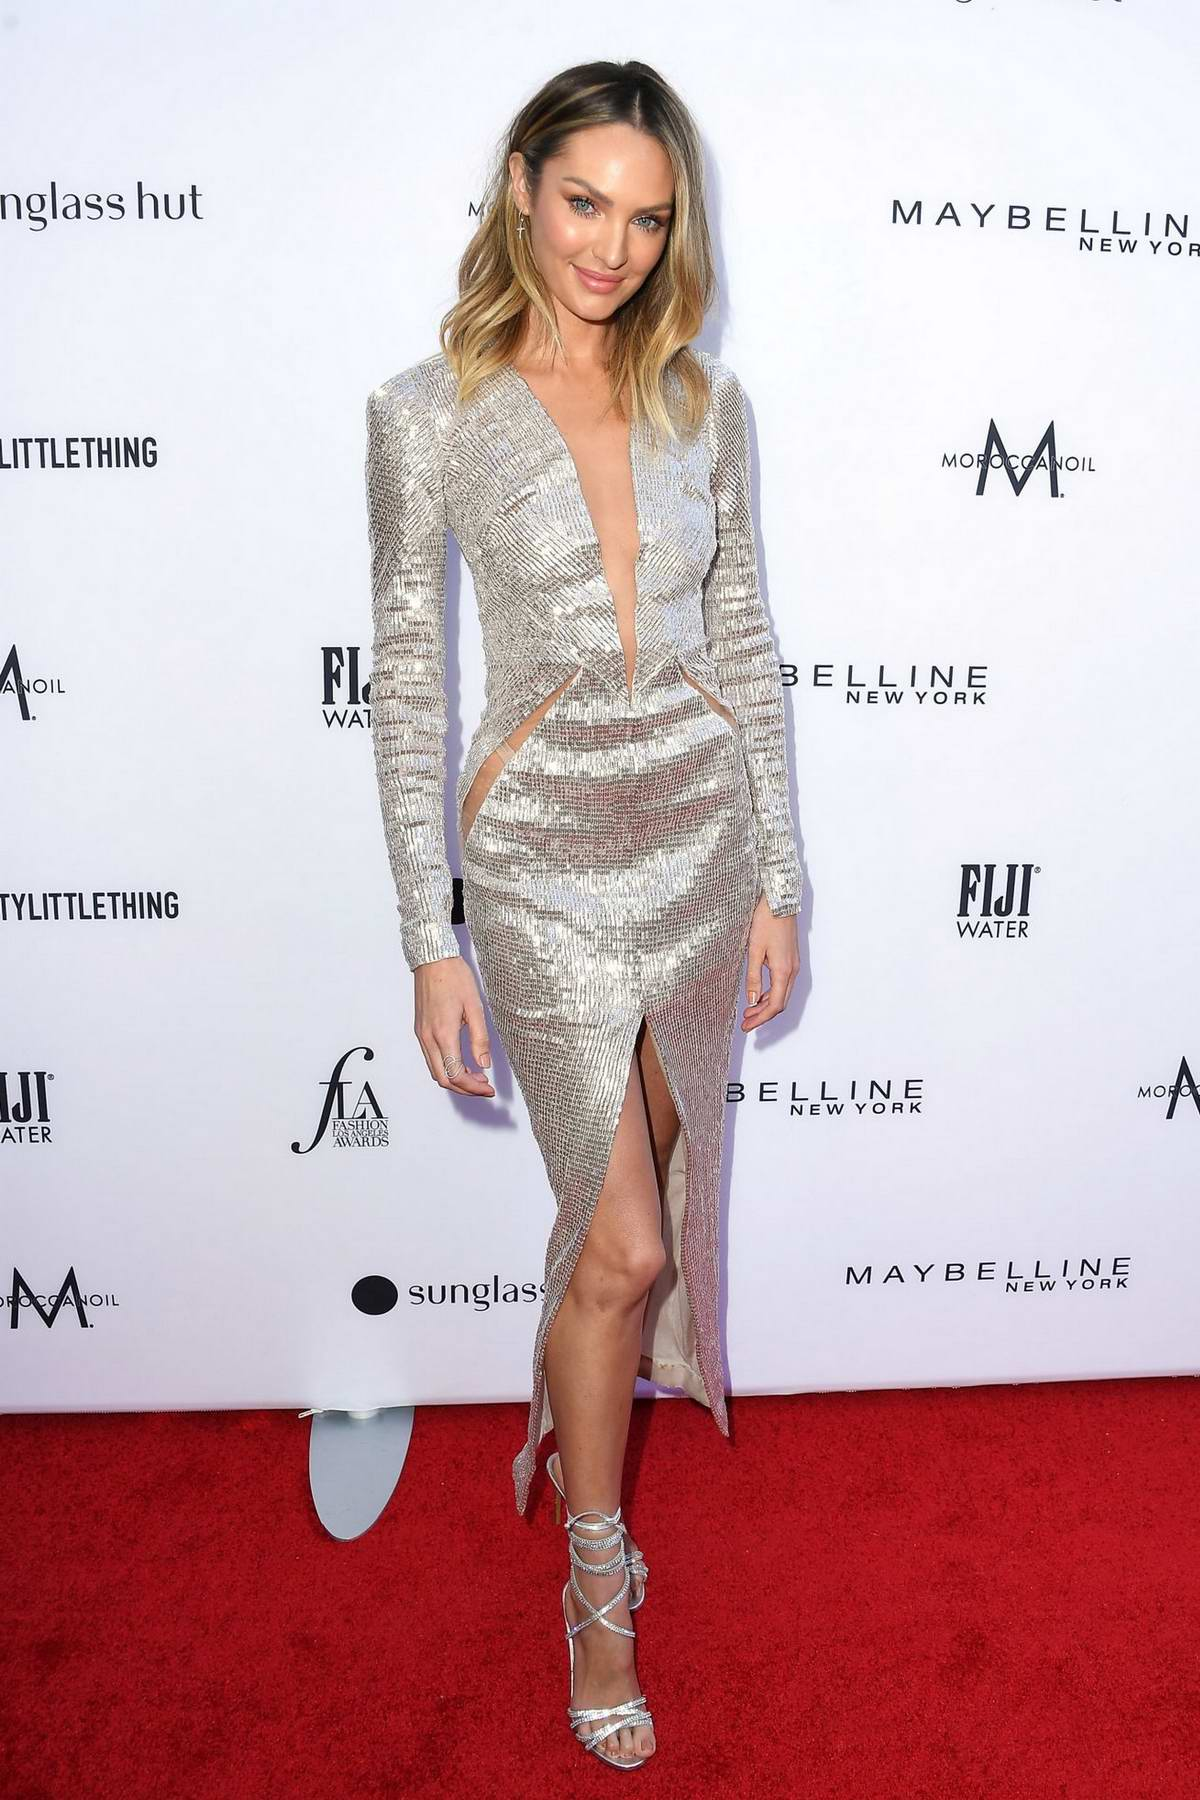 Candice Swanepoel attends The Daily Front Row's 5th Annual Fashion Awards at The Beverly Hills Hotel in Los Angeles